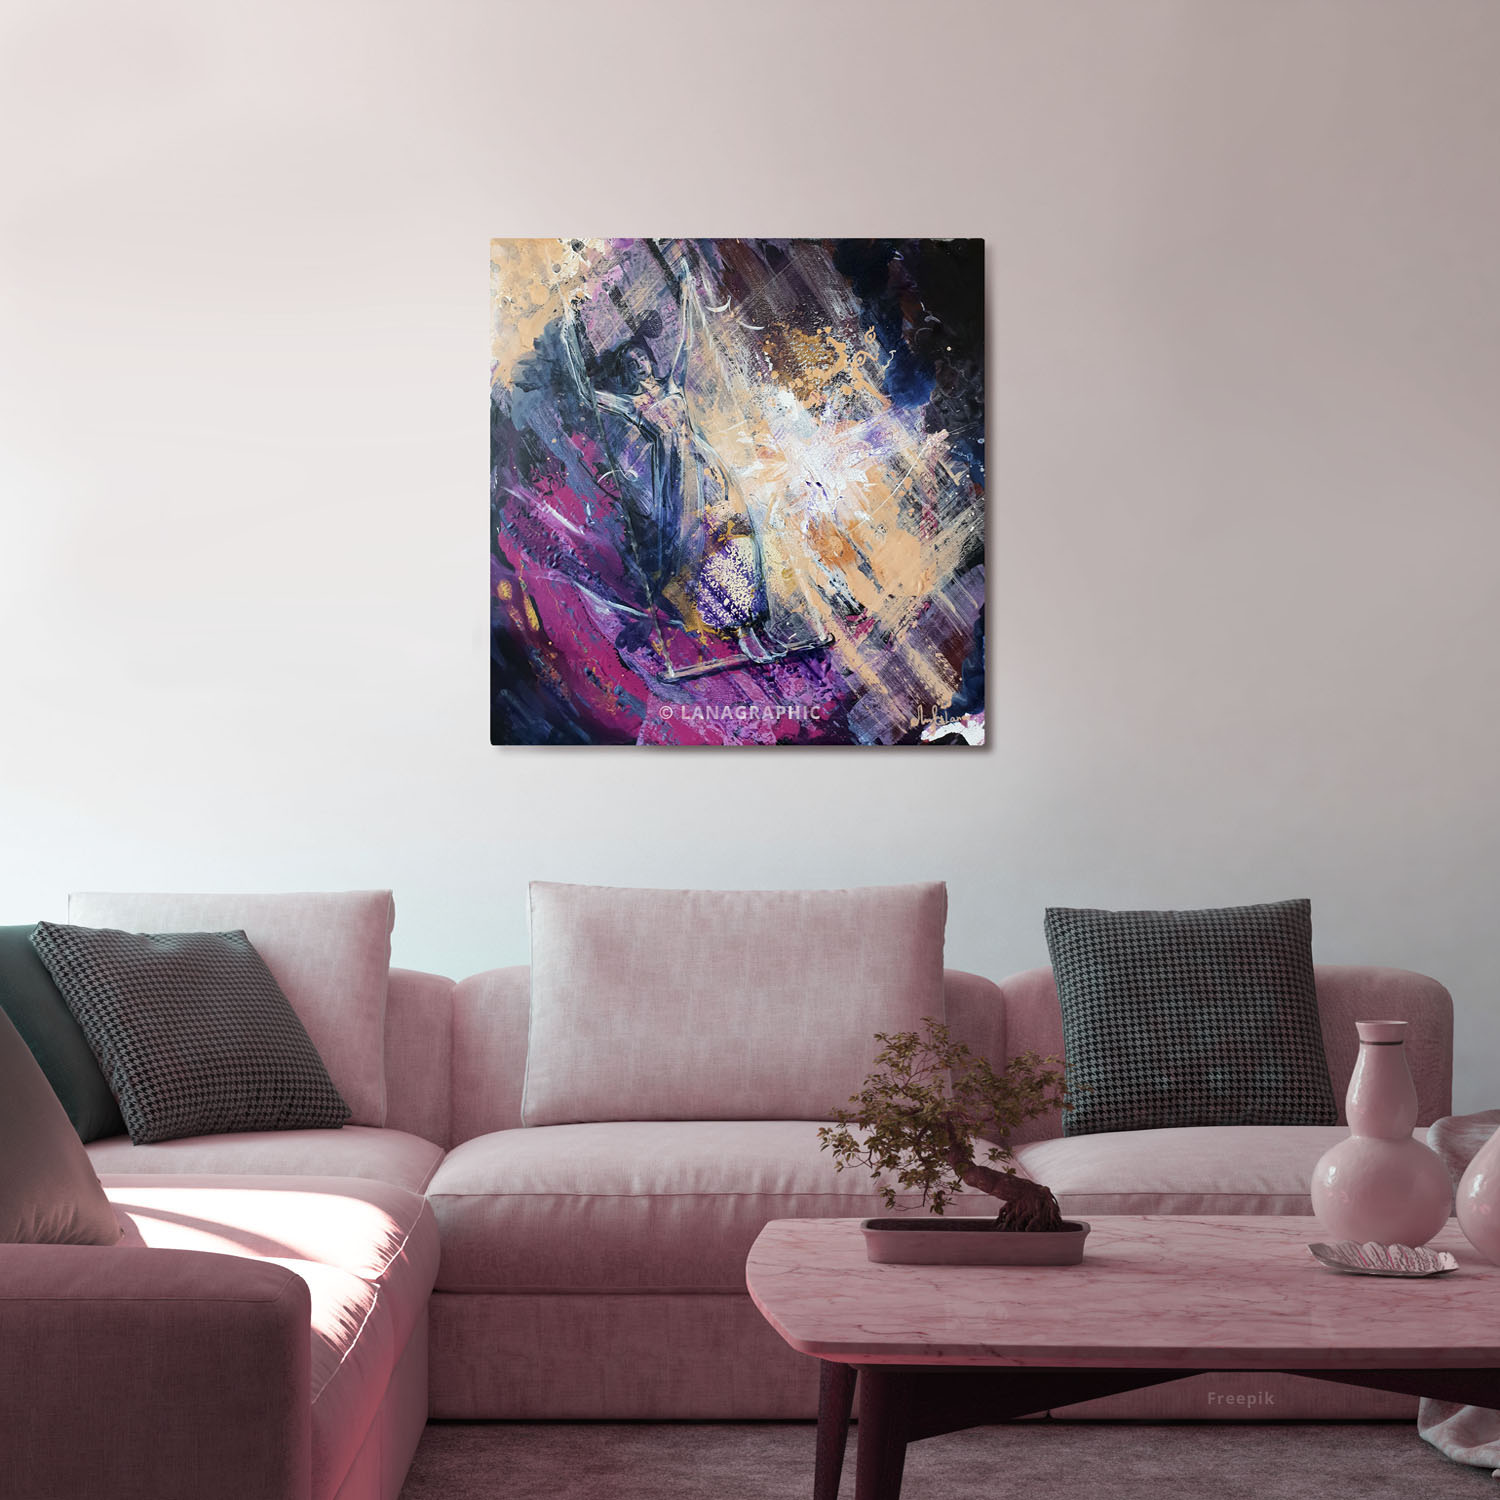 art-in-interior-Challenging the Limits-Lanagraphic